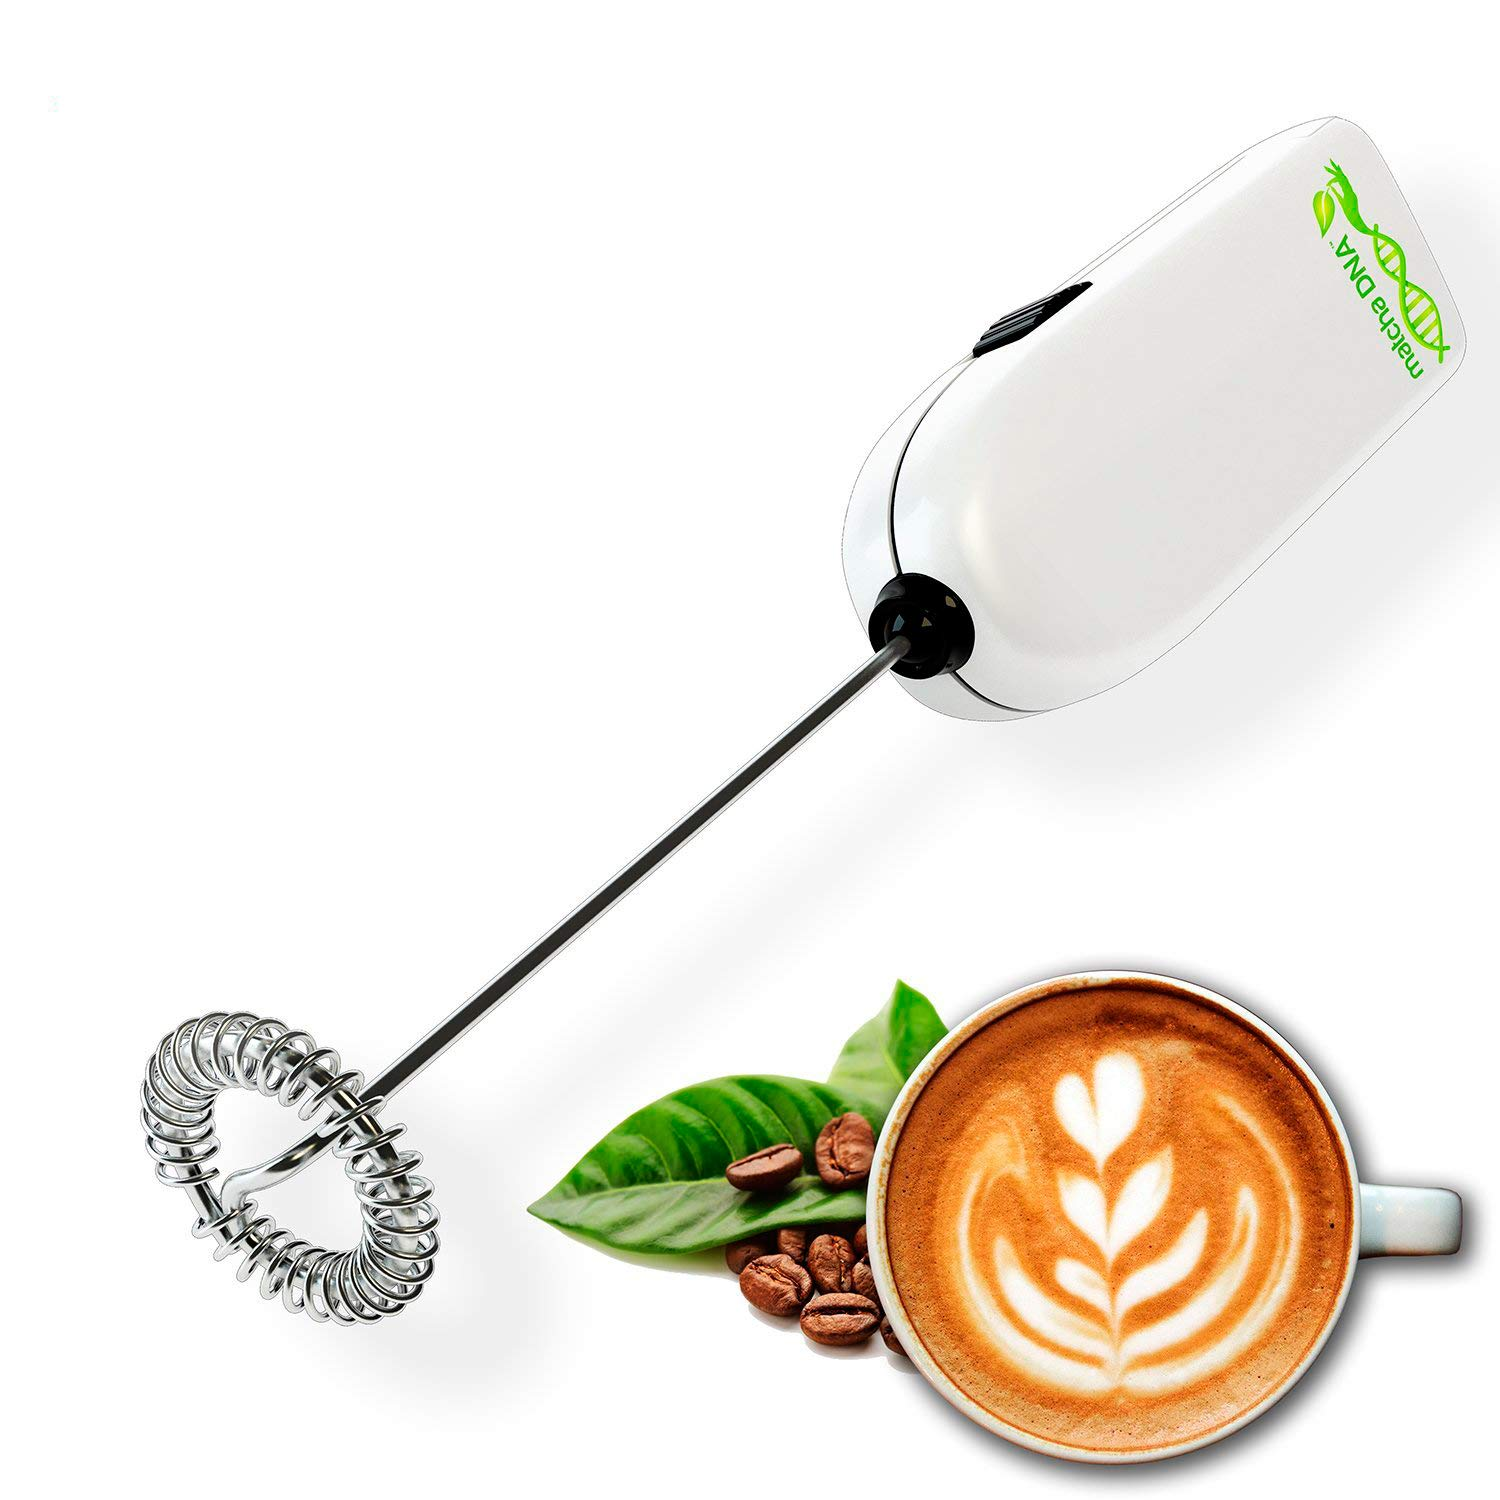 Best Handheld Mixers 2020 Amazon.com: MatchaDNA Milk Frother   Handheld Battery Operated